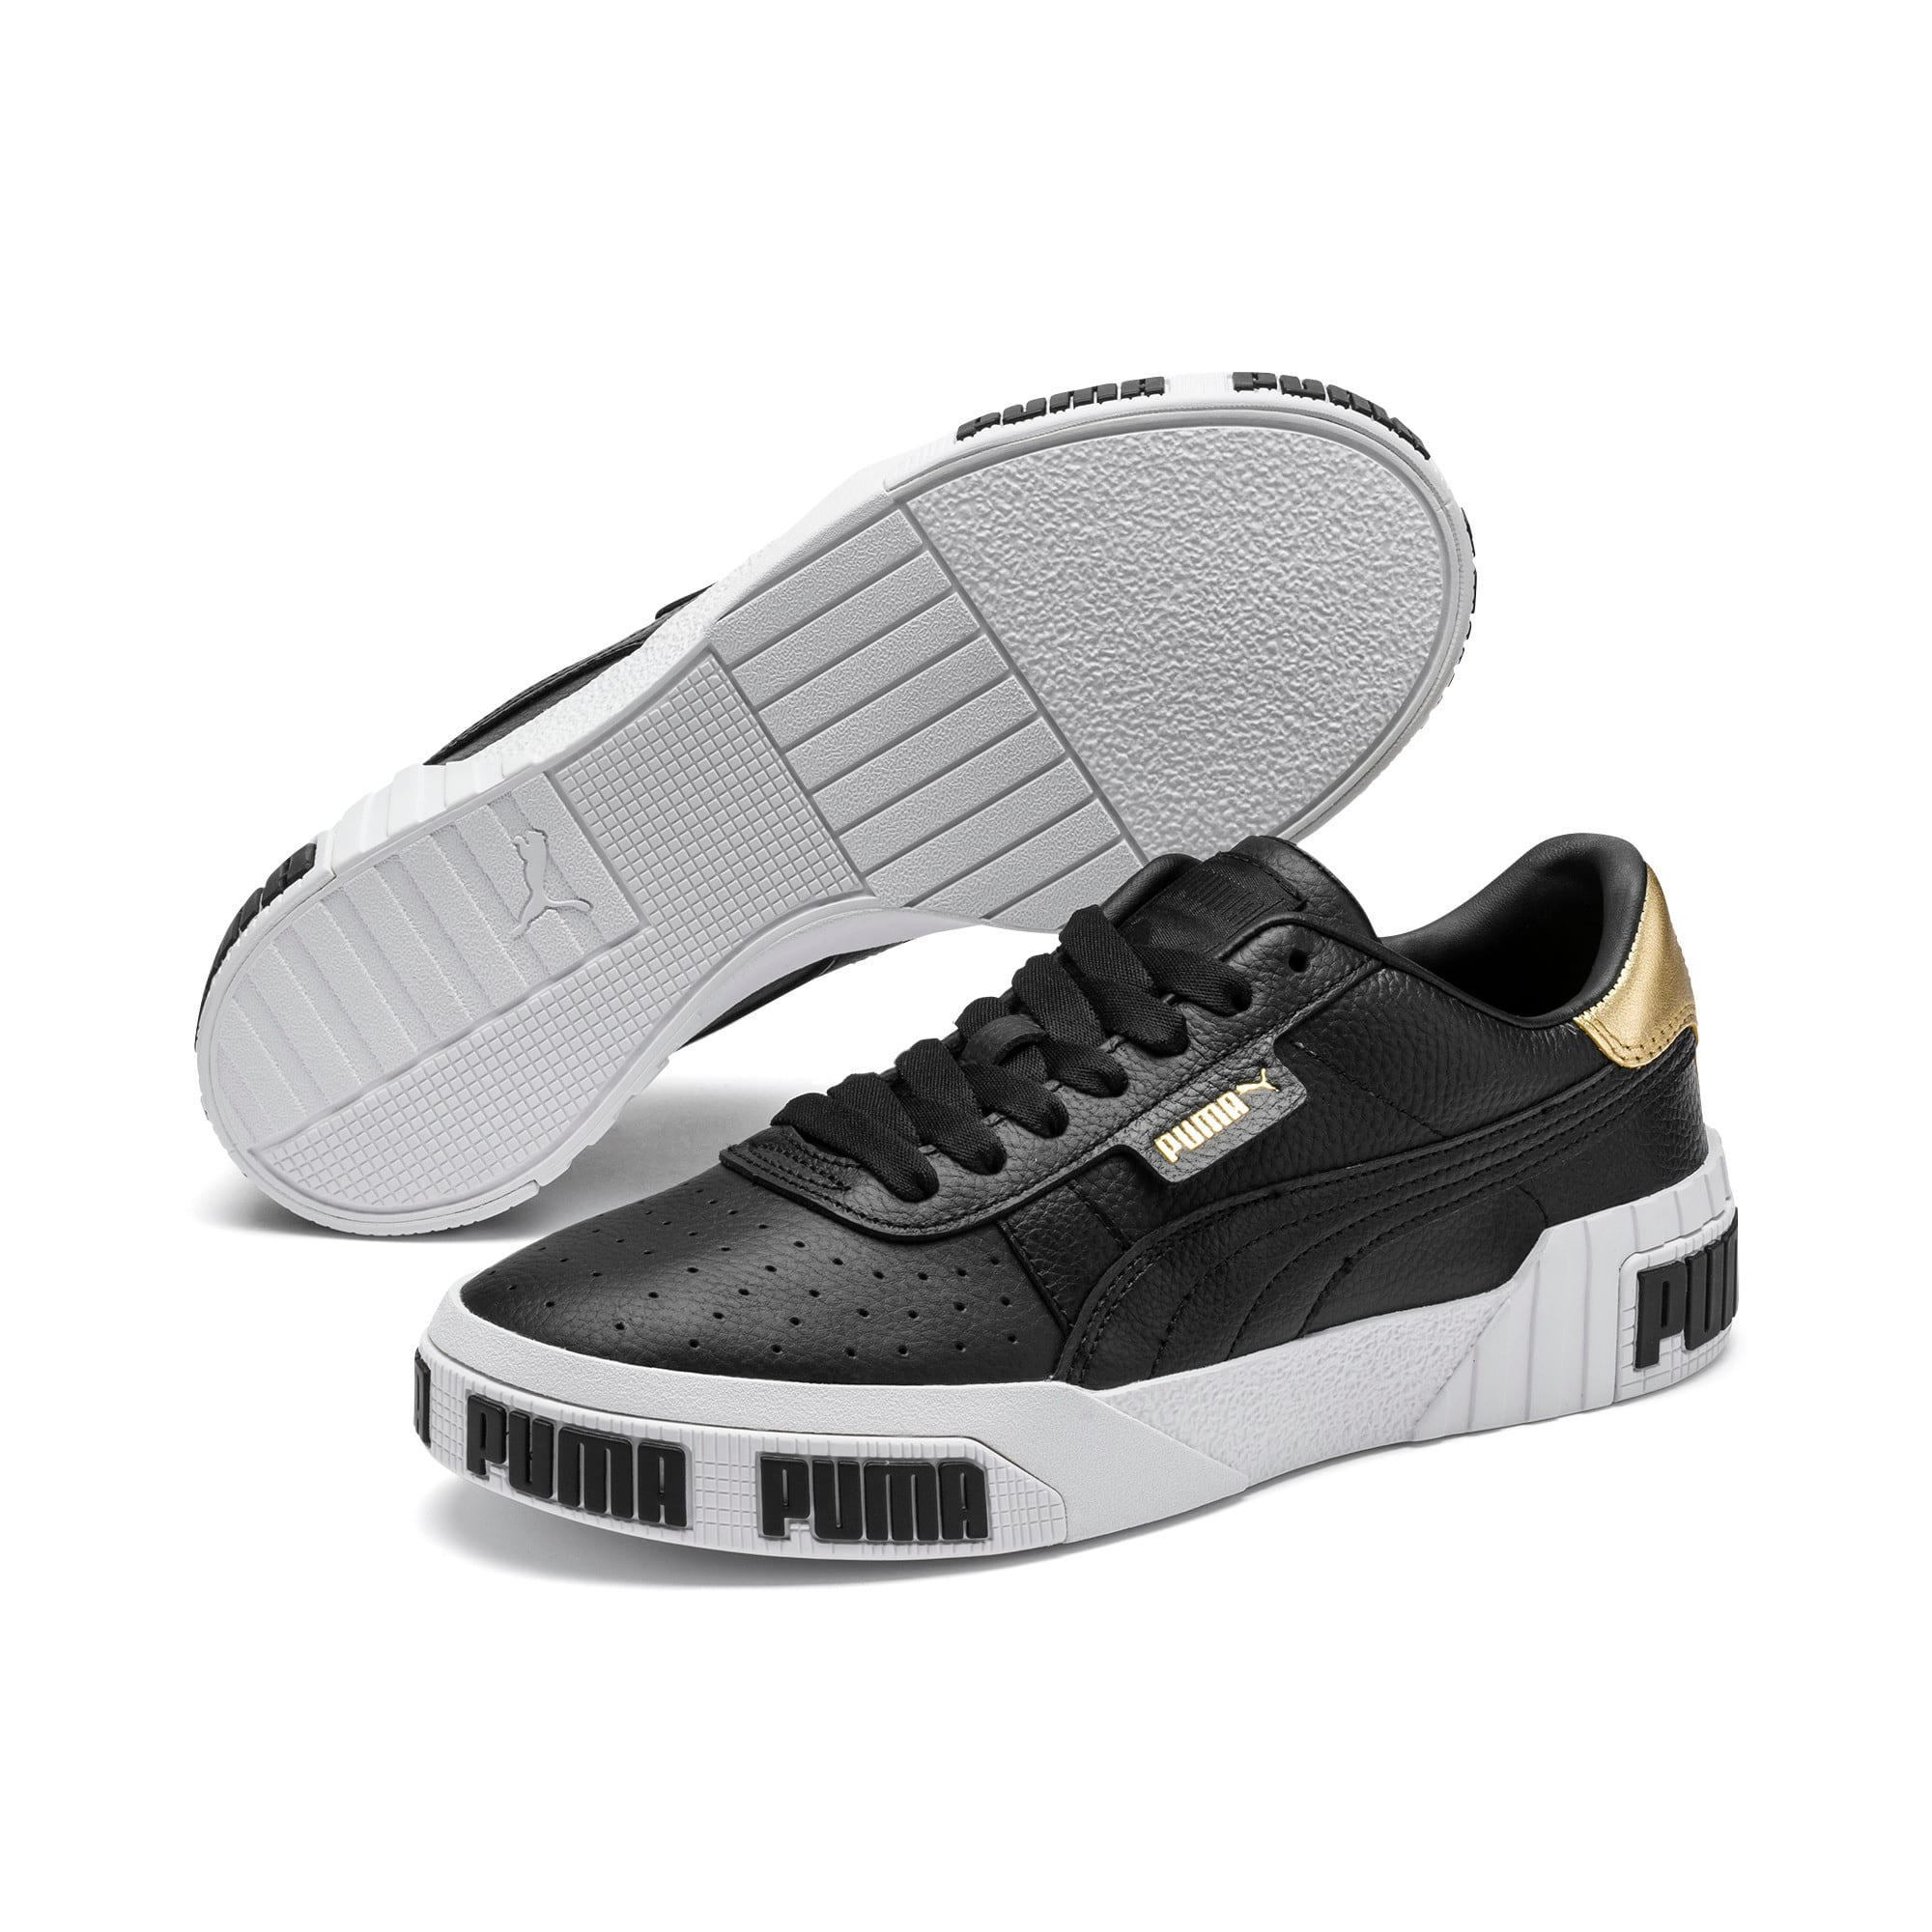 Thumbnail 2 of Cali Bold Metallic sportschoenen voor dames, Puma Black-Gold, medium